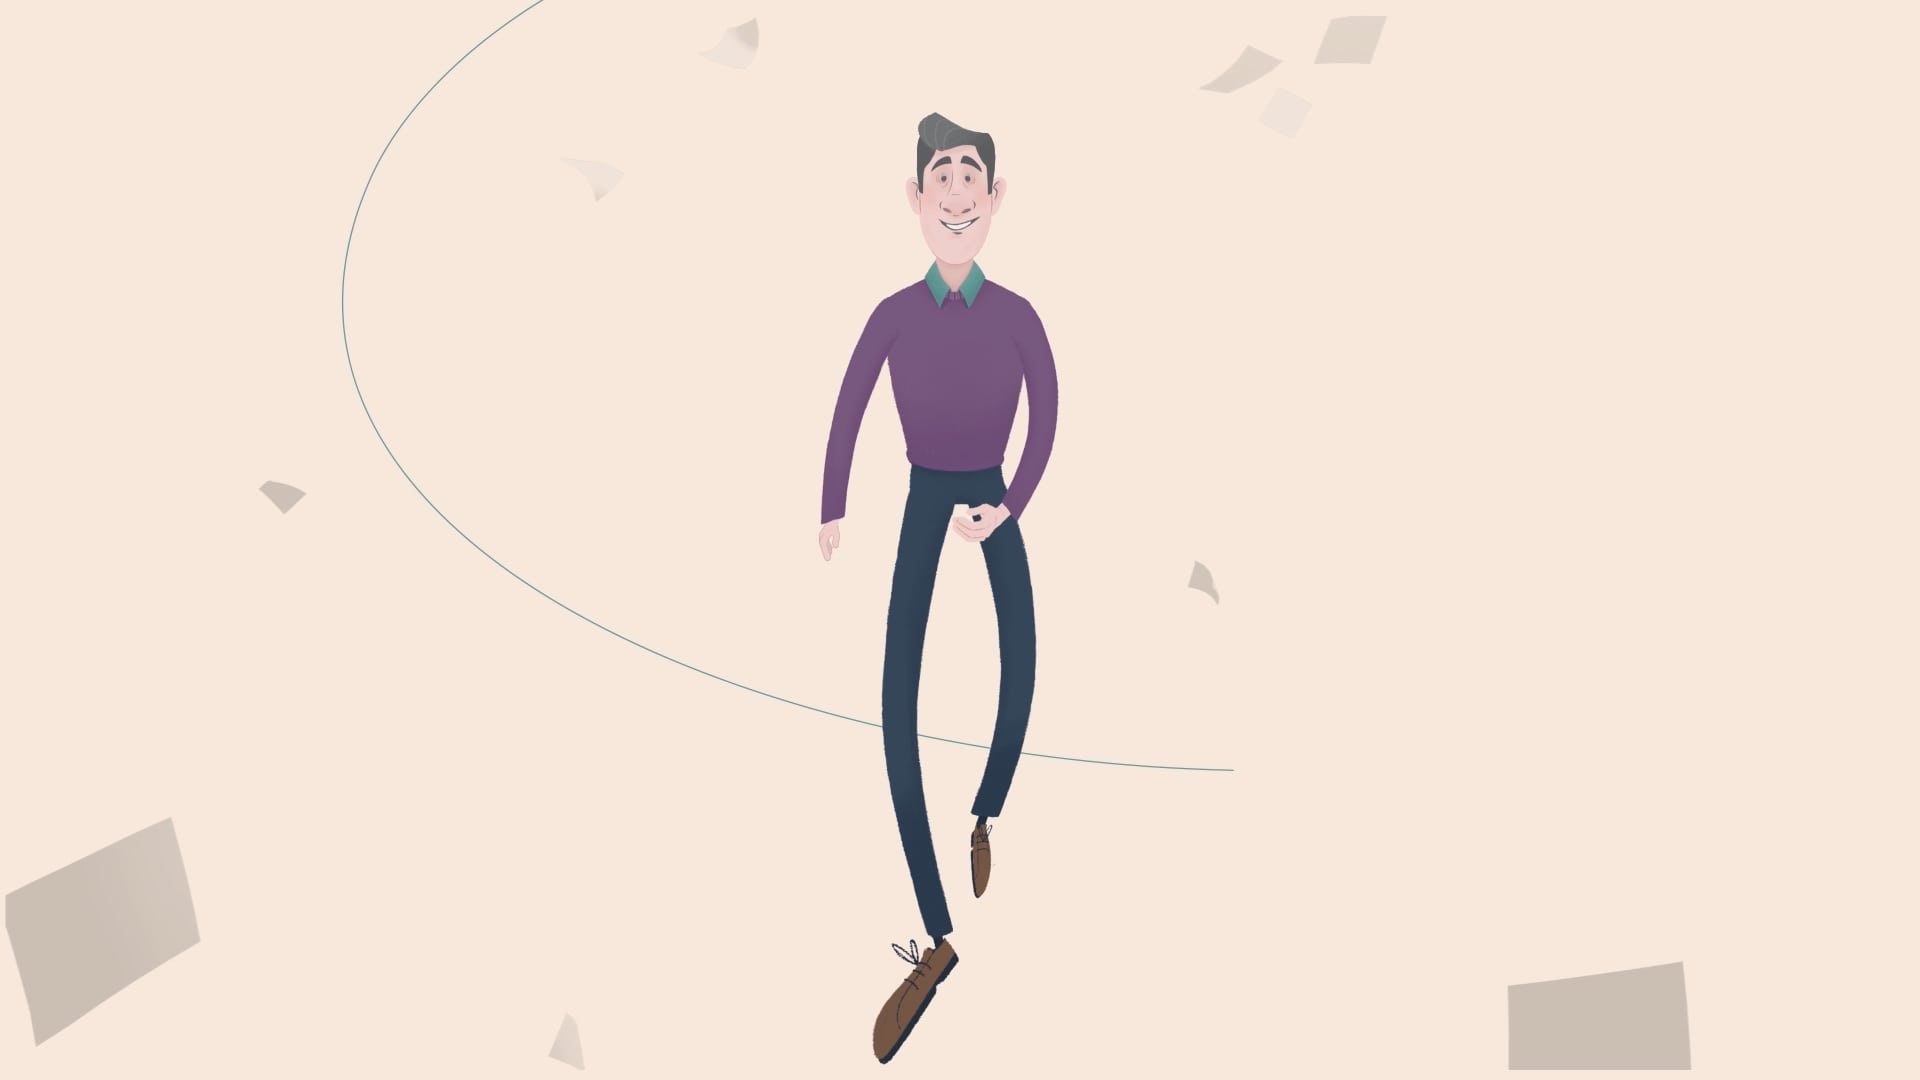 character animation for prospective investors - man walking